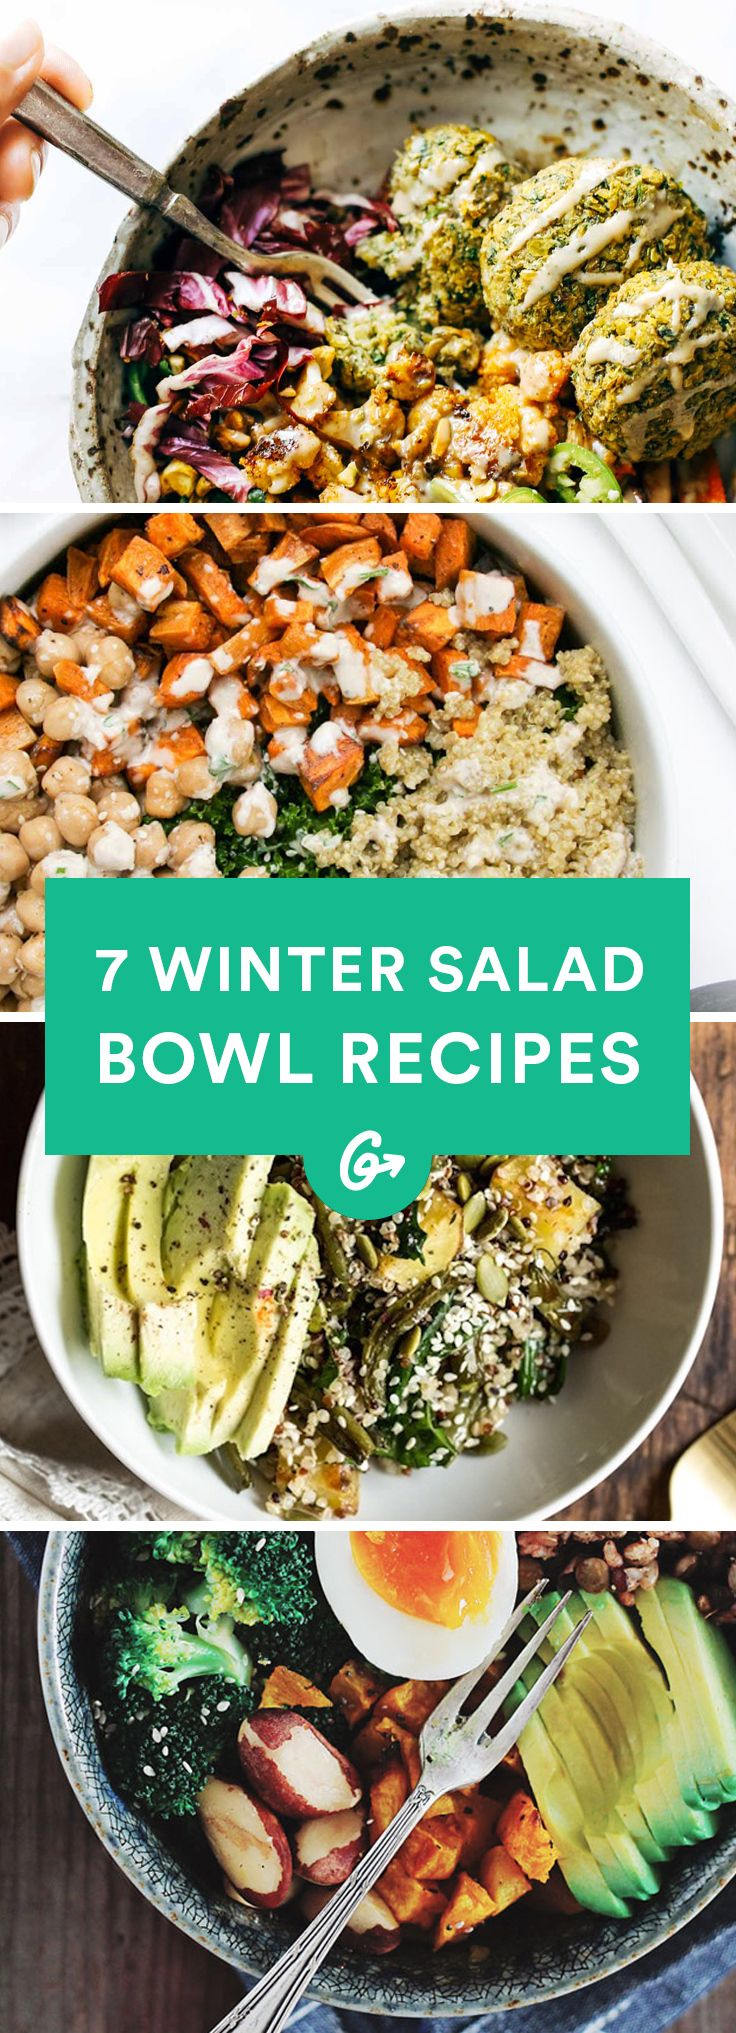 7 Salad Bowl Recipes That'll Make You Want to Eat Your Veggies #winter #salad #bowls http://greatist.com/eat/winter-salad-recipes